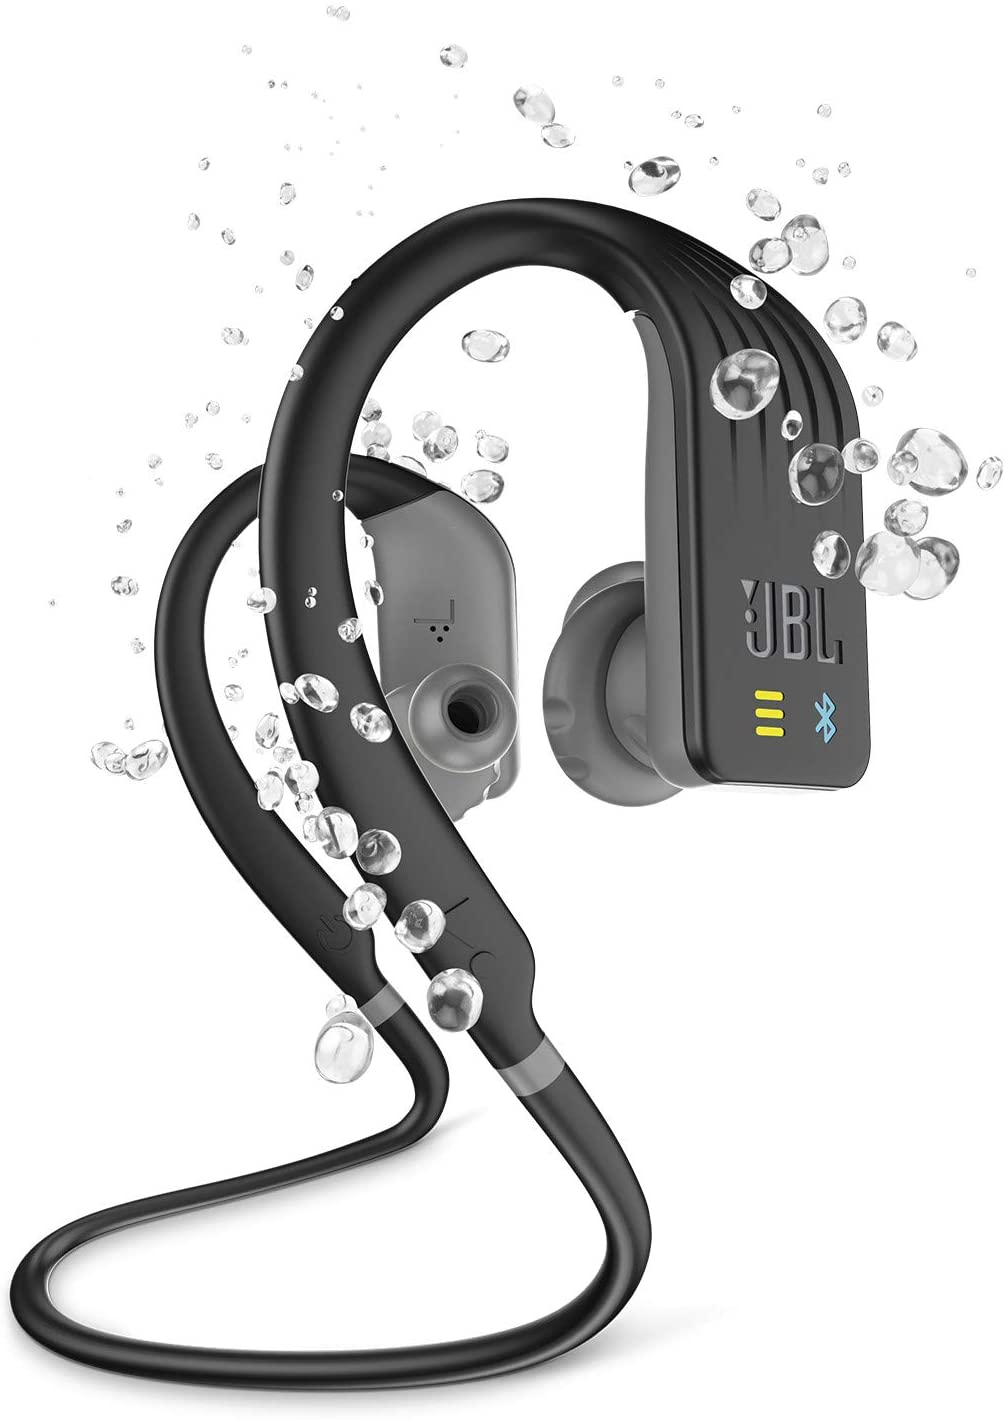 JBL Endurance Dive Black Wireless In Ear Sport Headphones With MP3 Player